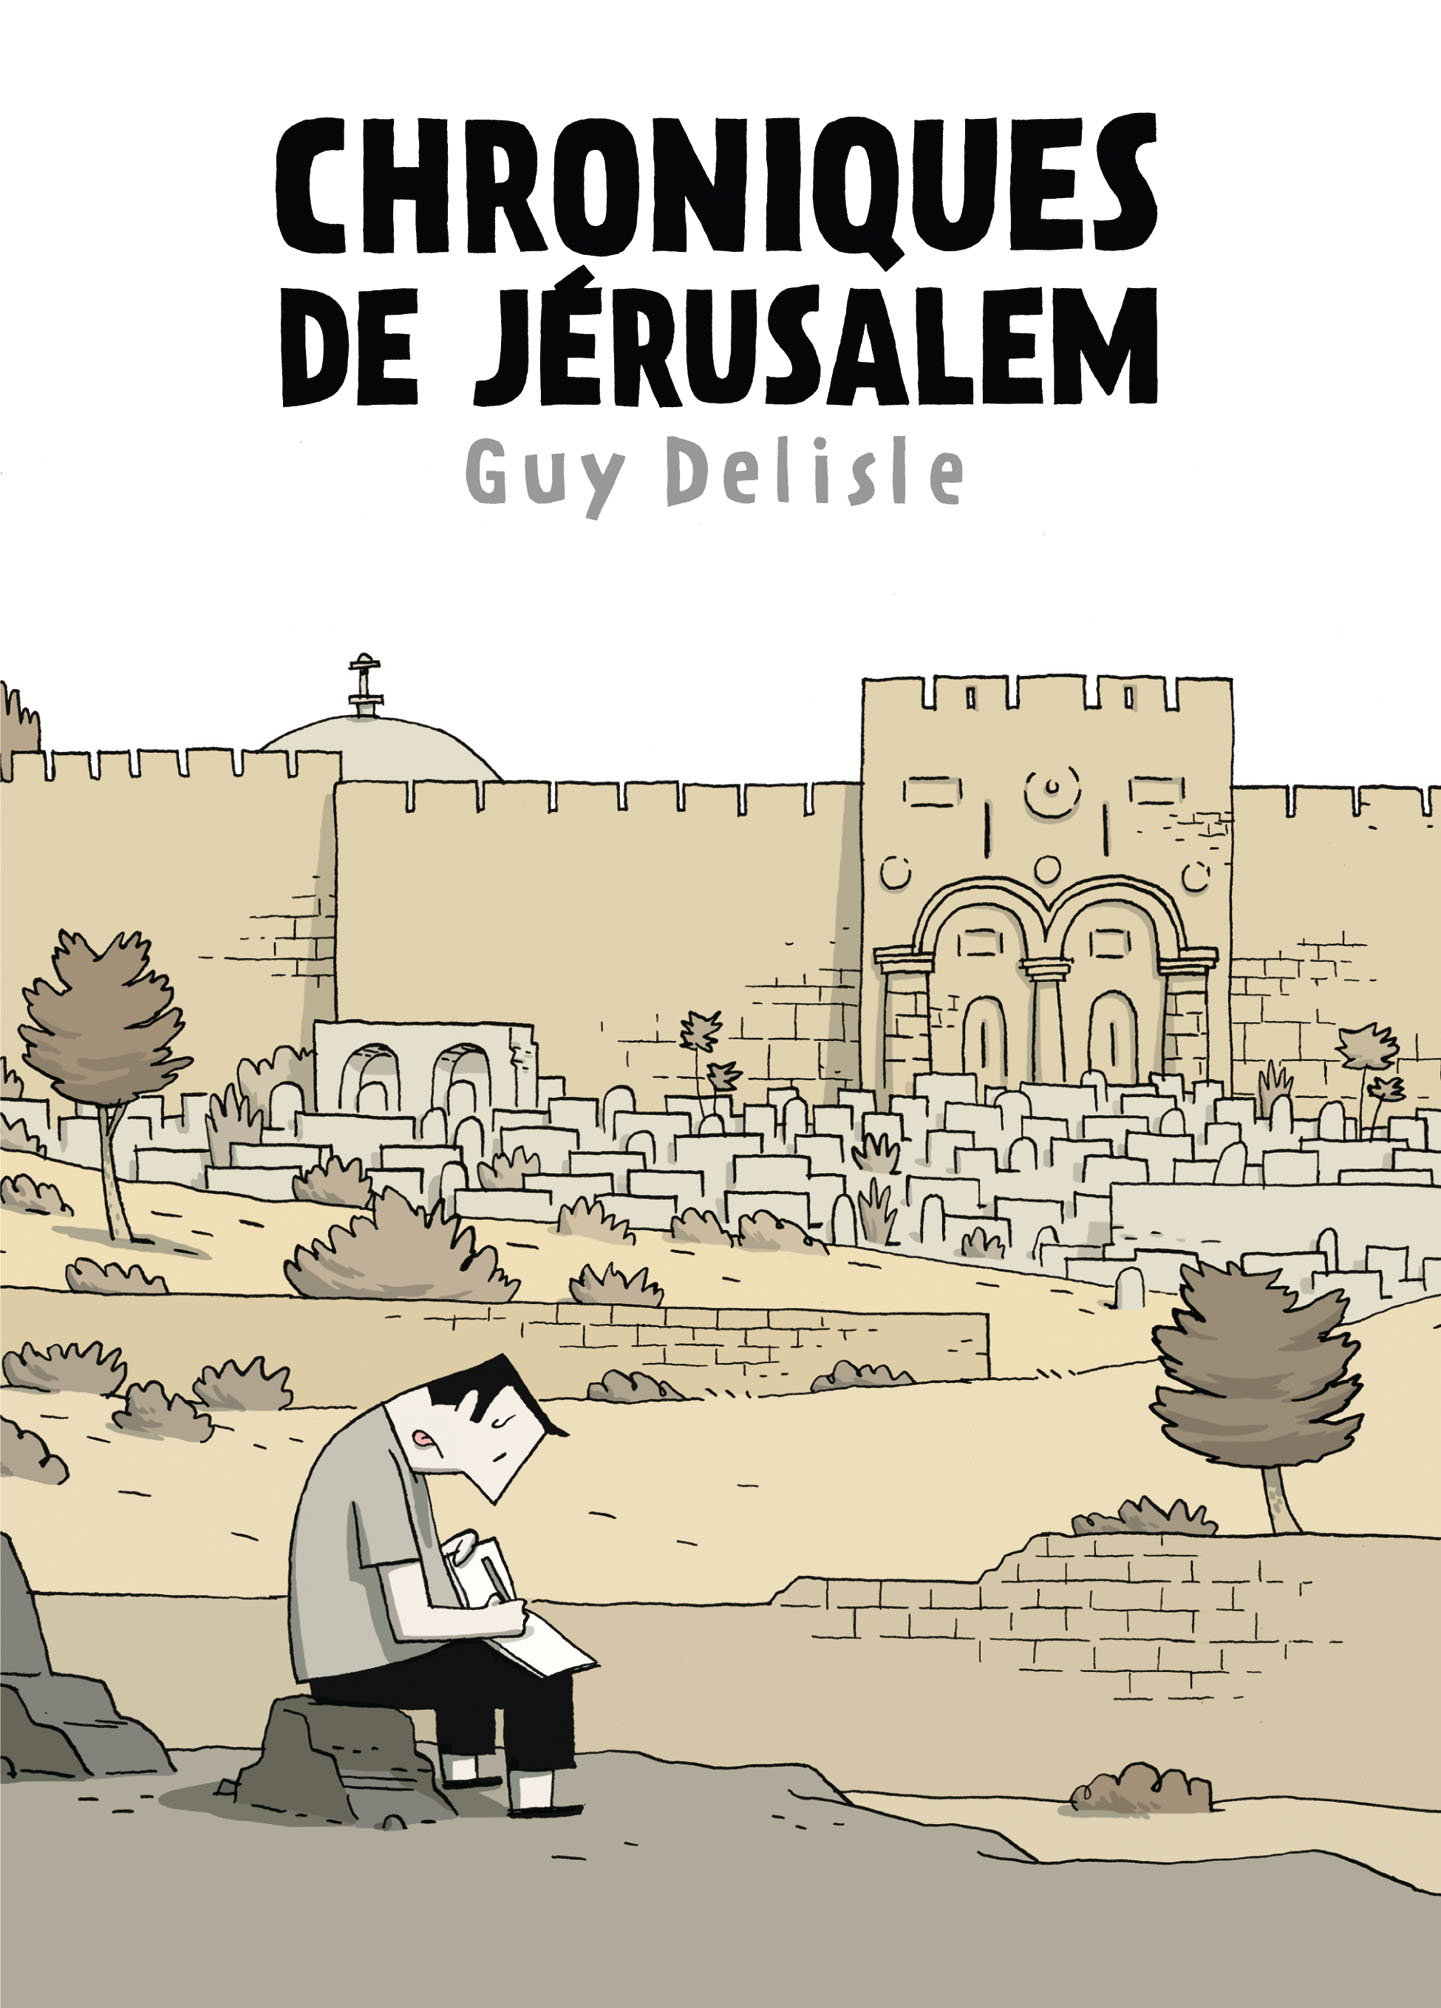 https://voyages.ideoz.fr/wp-content/plugins/wp-o-matic/cache/b822f_chroniques-de-jerusalem-bd-volume-1-simple-31242.jpg